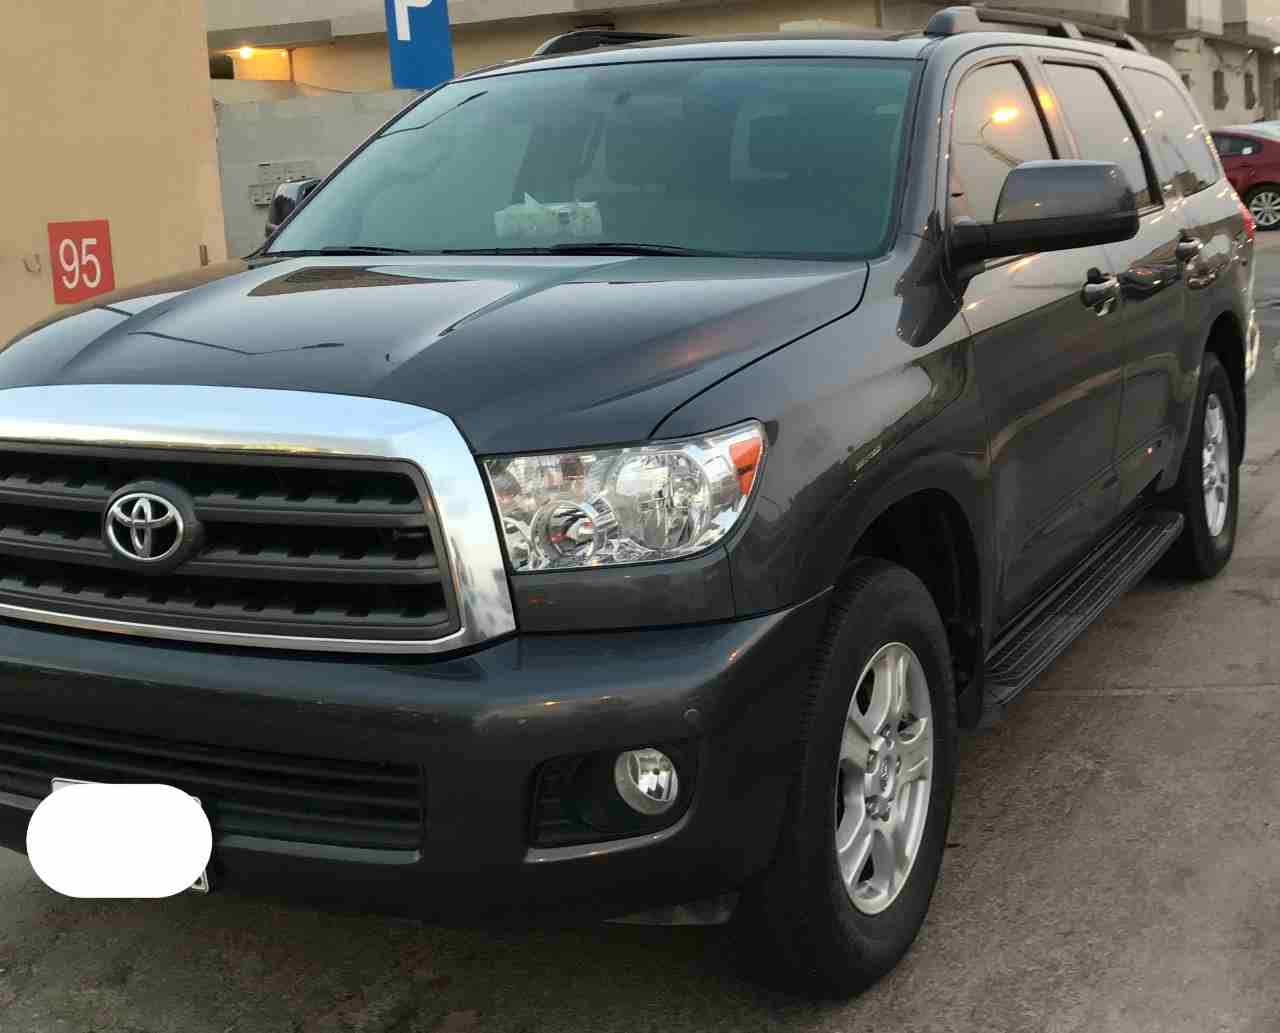 2015 Toyota FJ Cruiser for sale, still very clean in and out. The car is in good and perfect condition, The car has perfect tires and it is GCC Specs. Intereste-  تويوتا سوكويا نظيف جدا...